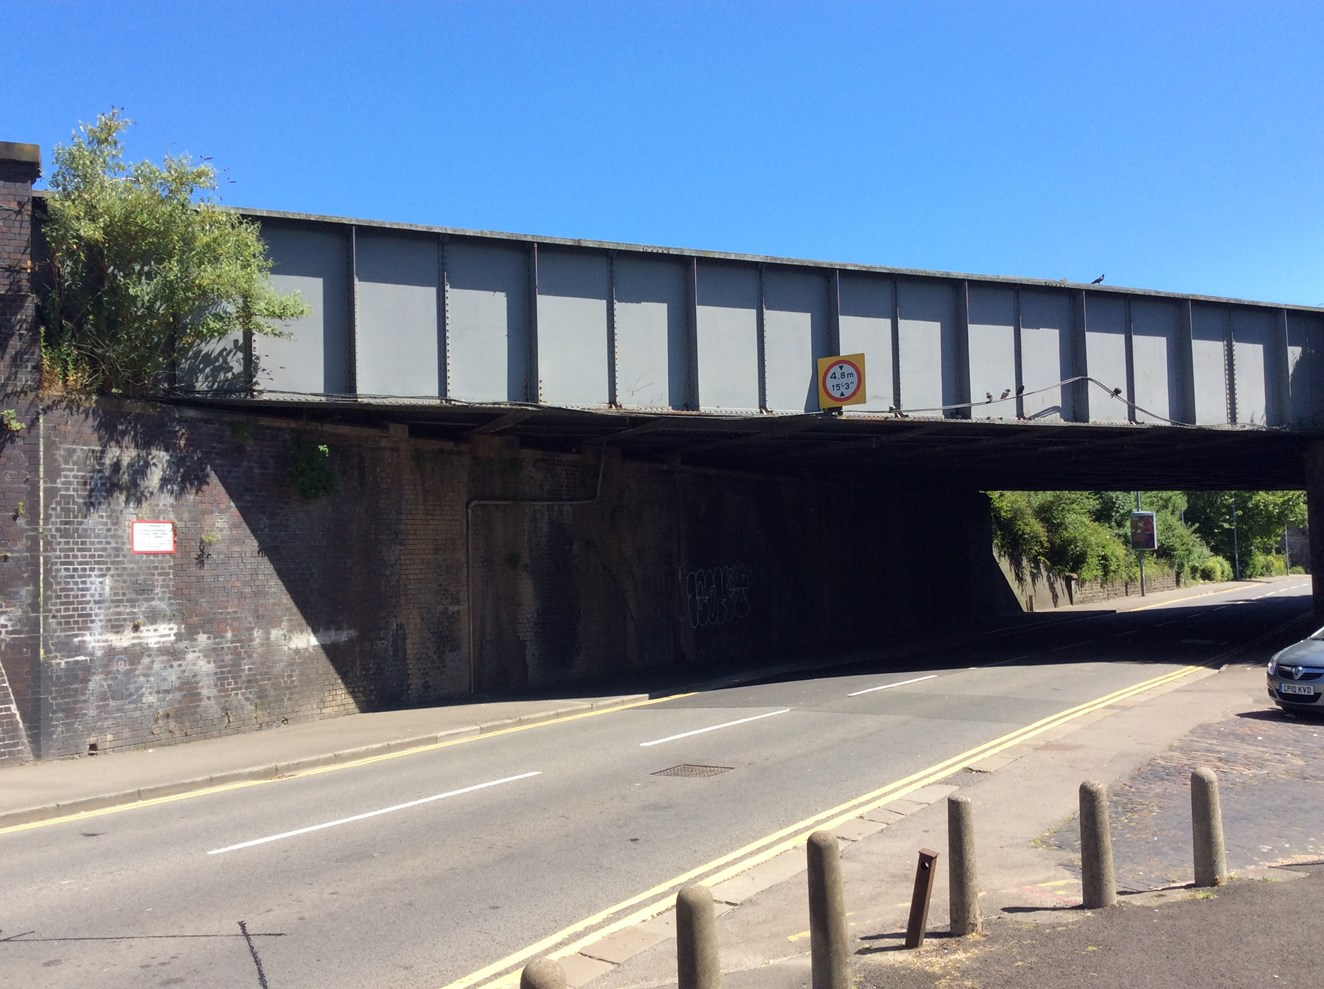 Residents invited to find out more about bridge renewal project in Newport: Caerleon Road Bridge, Newport